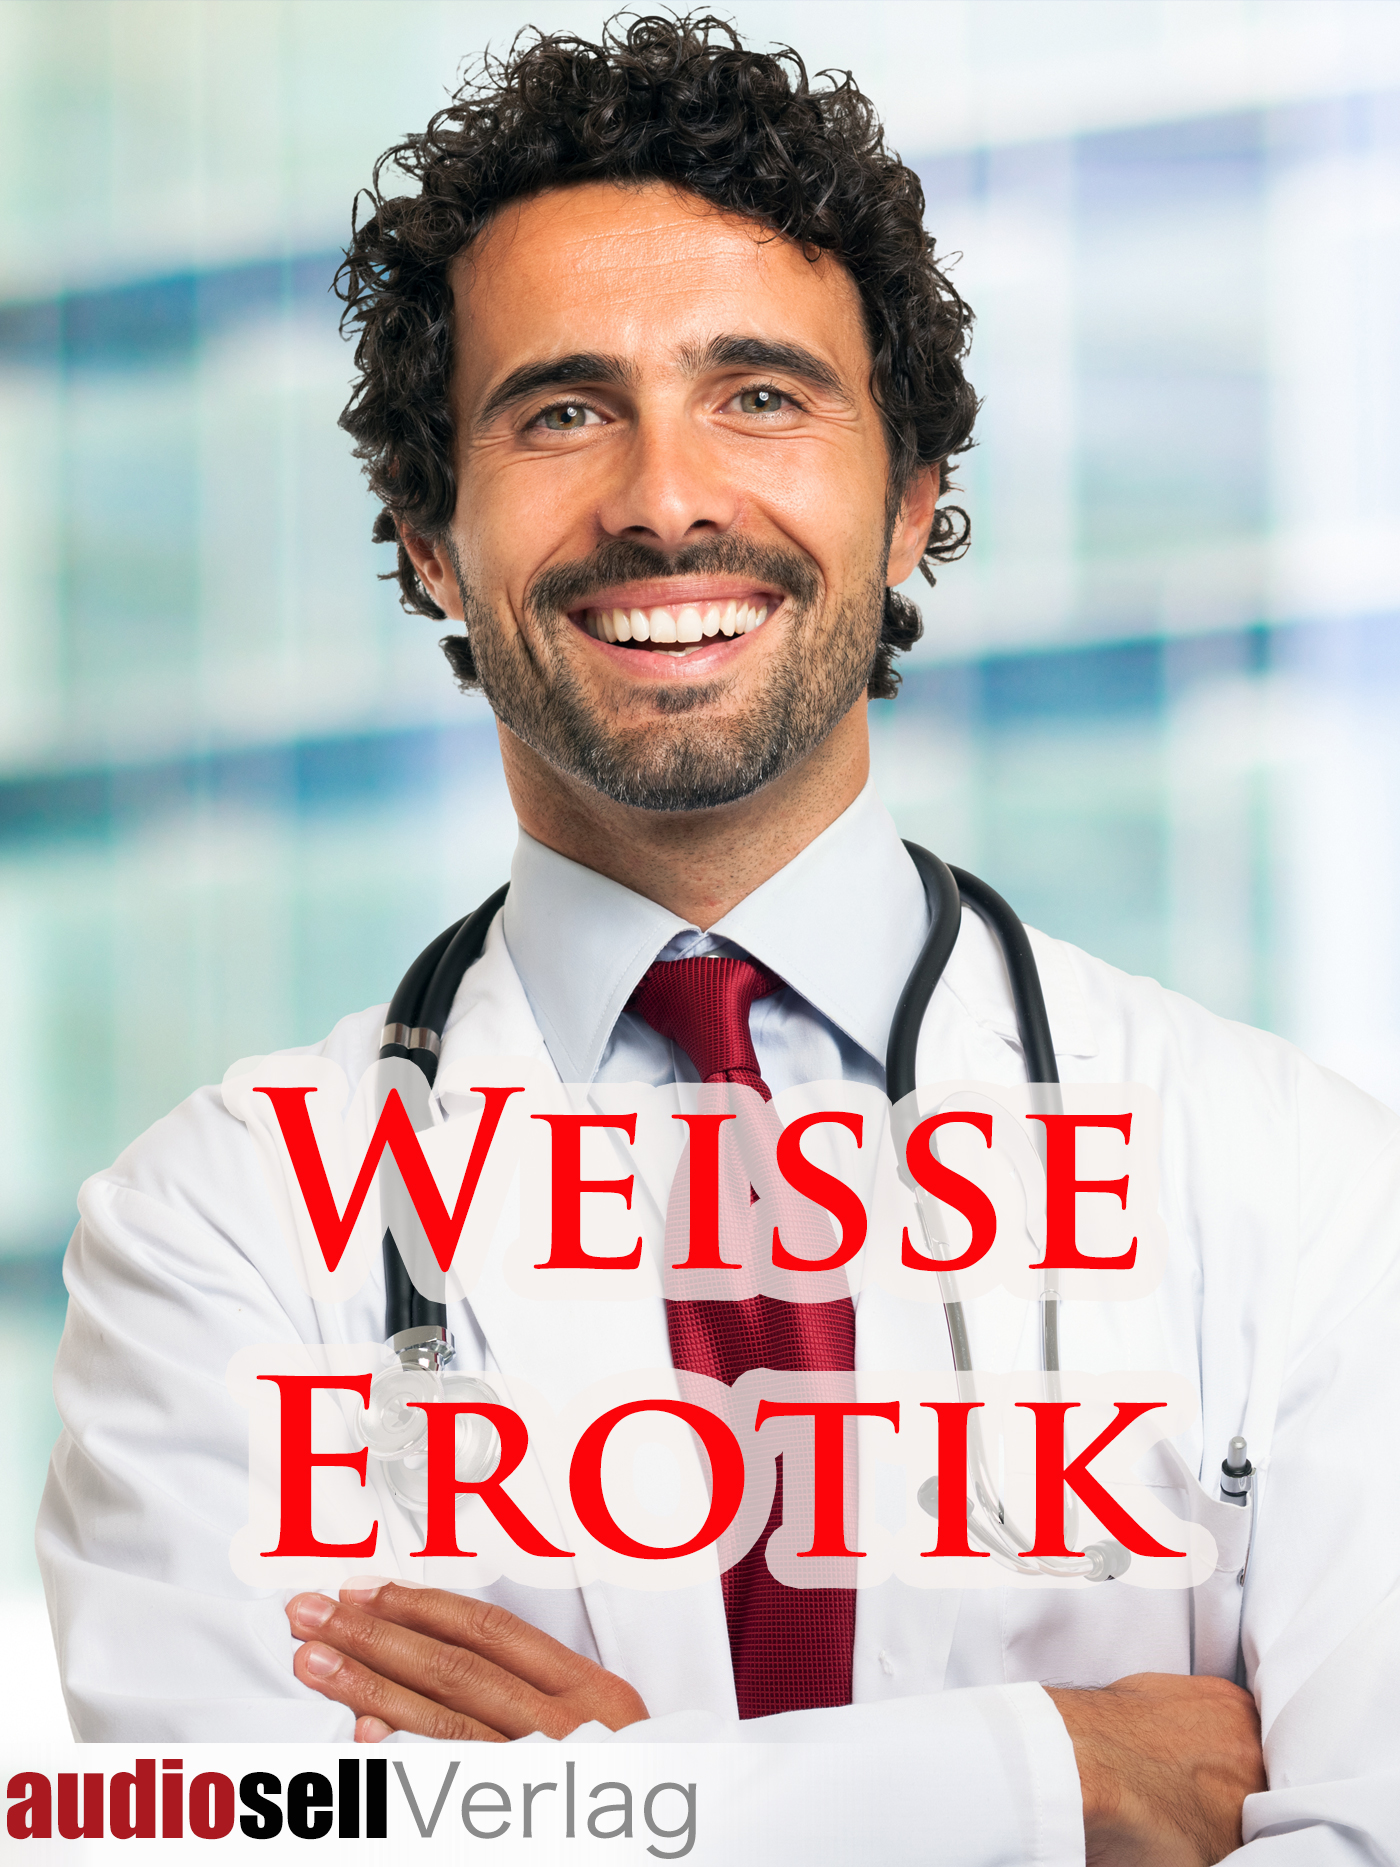 Finja van Landen Weisse Erotik chick weisse veterinary image guided interventions